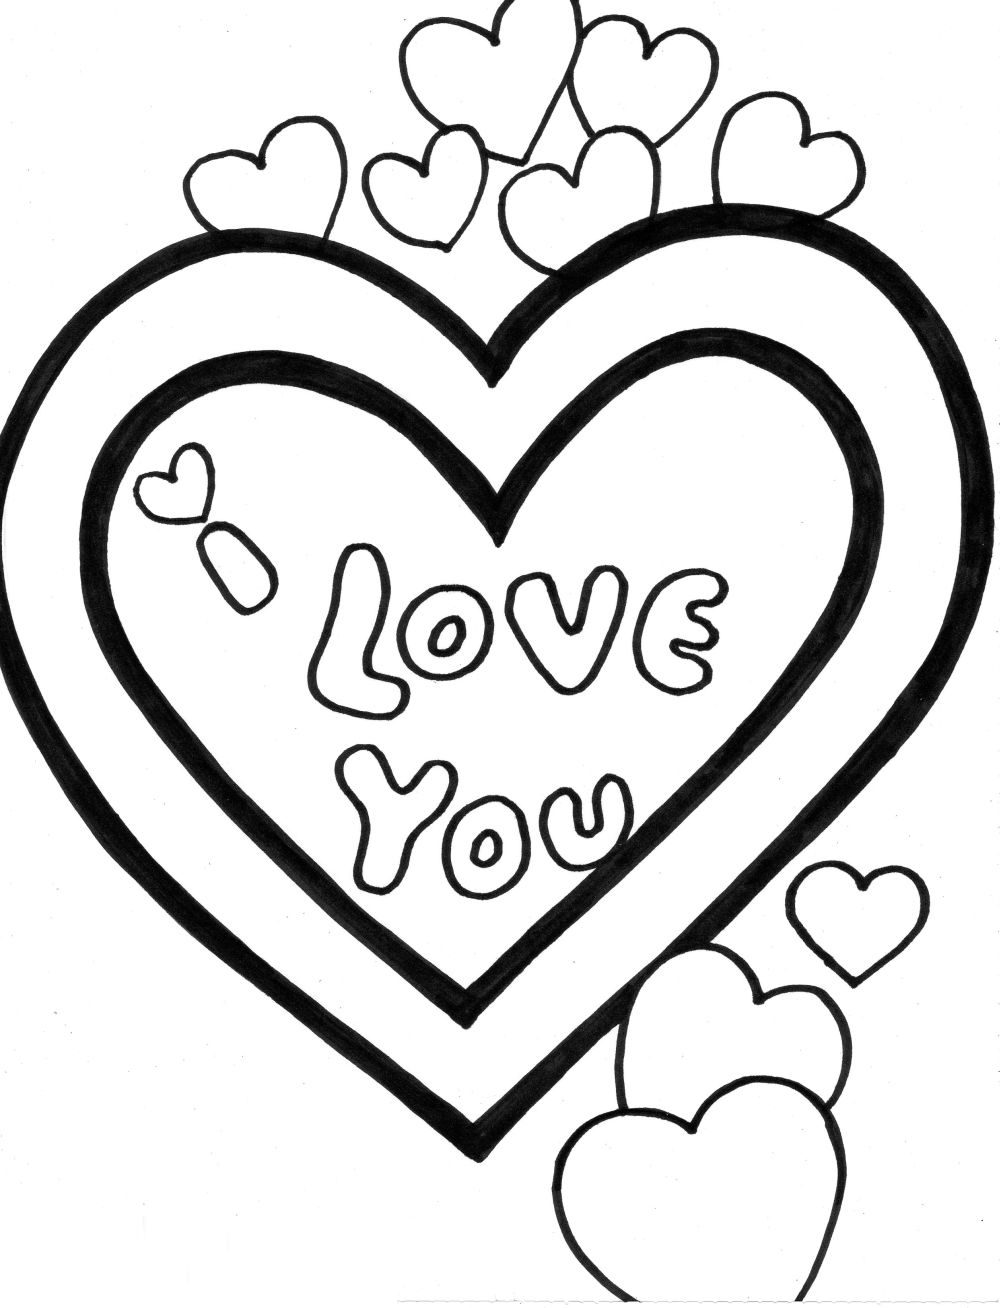 coloring love pictures quoti love you quot coloring pages coloring pictures love